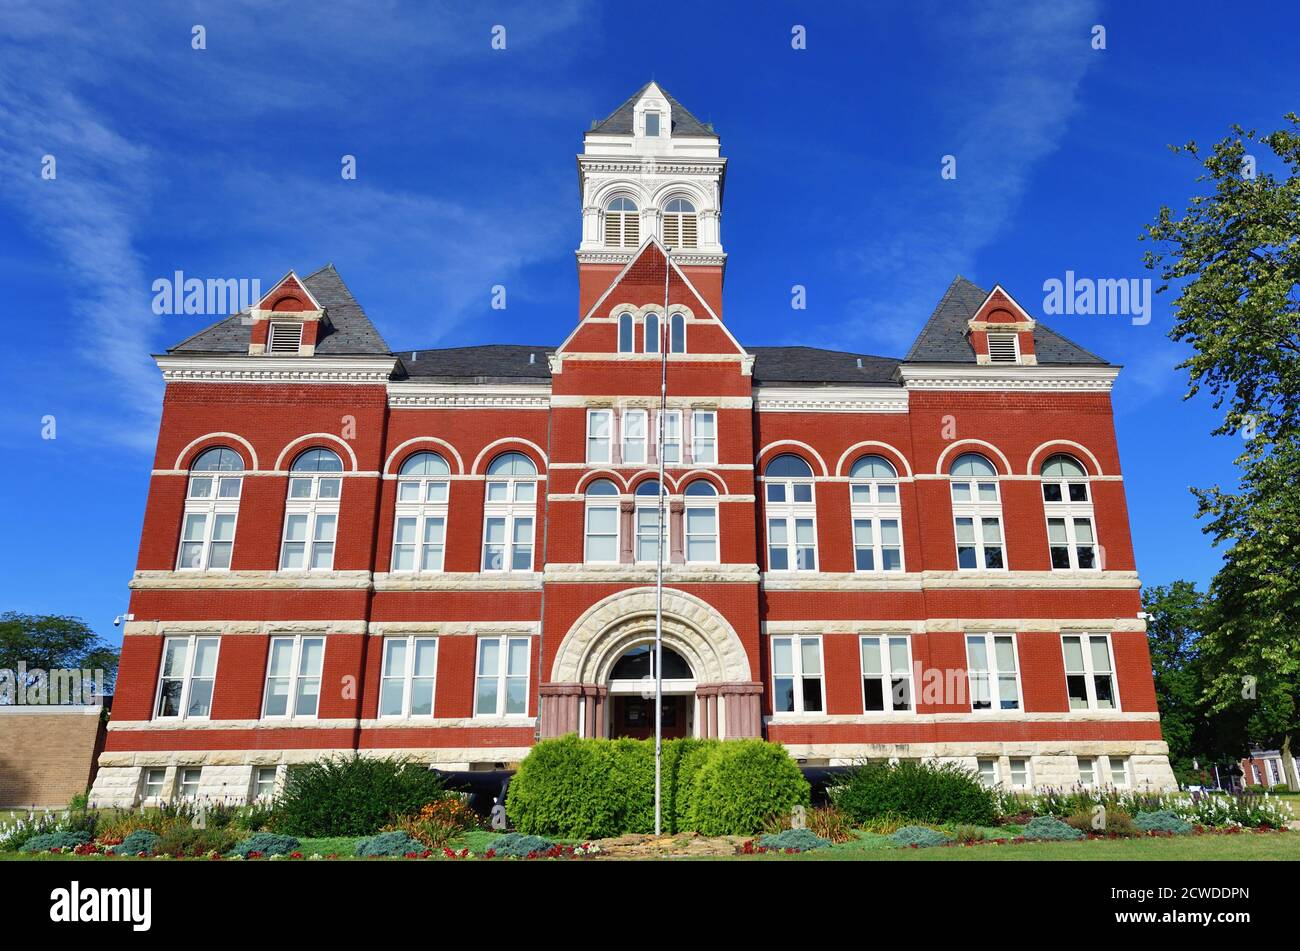 Oregon, Illinois, USA. The Ogle County Courthouse in the county seat of Oregon, Illinois. The building was completed in 1891. Stock Photo